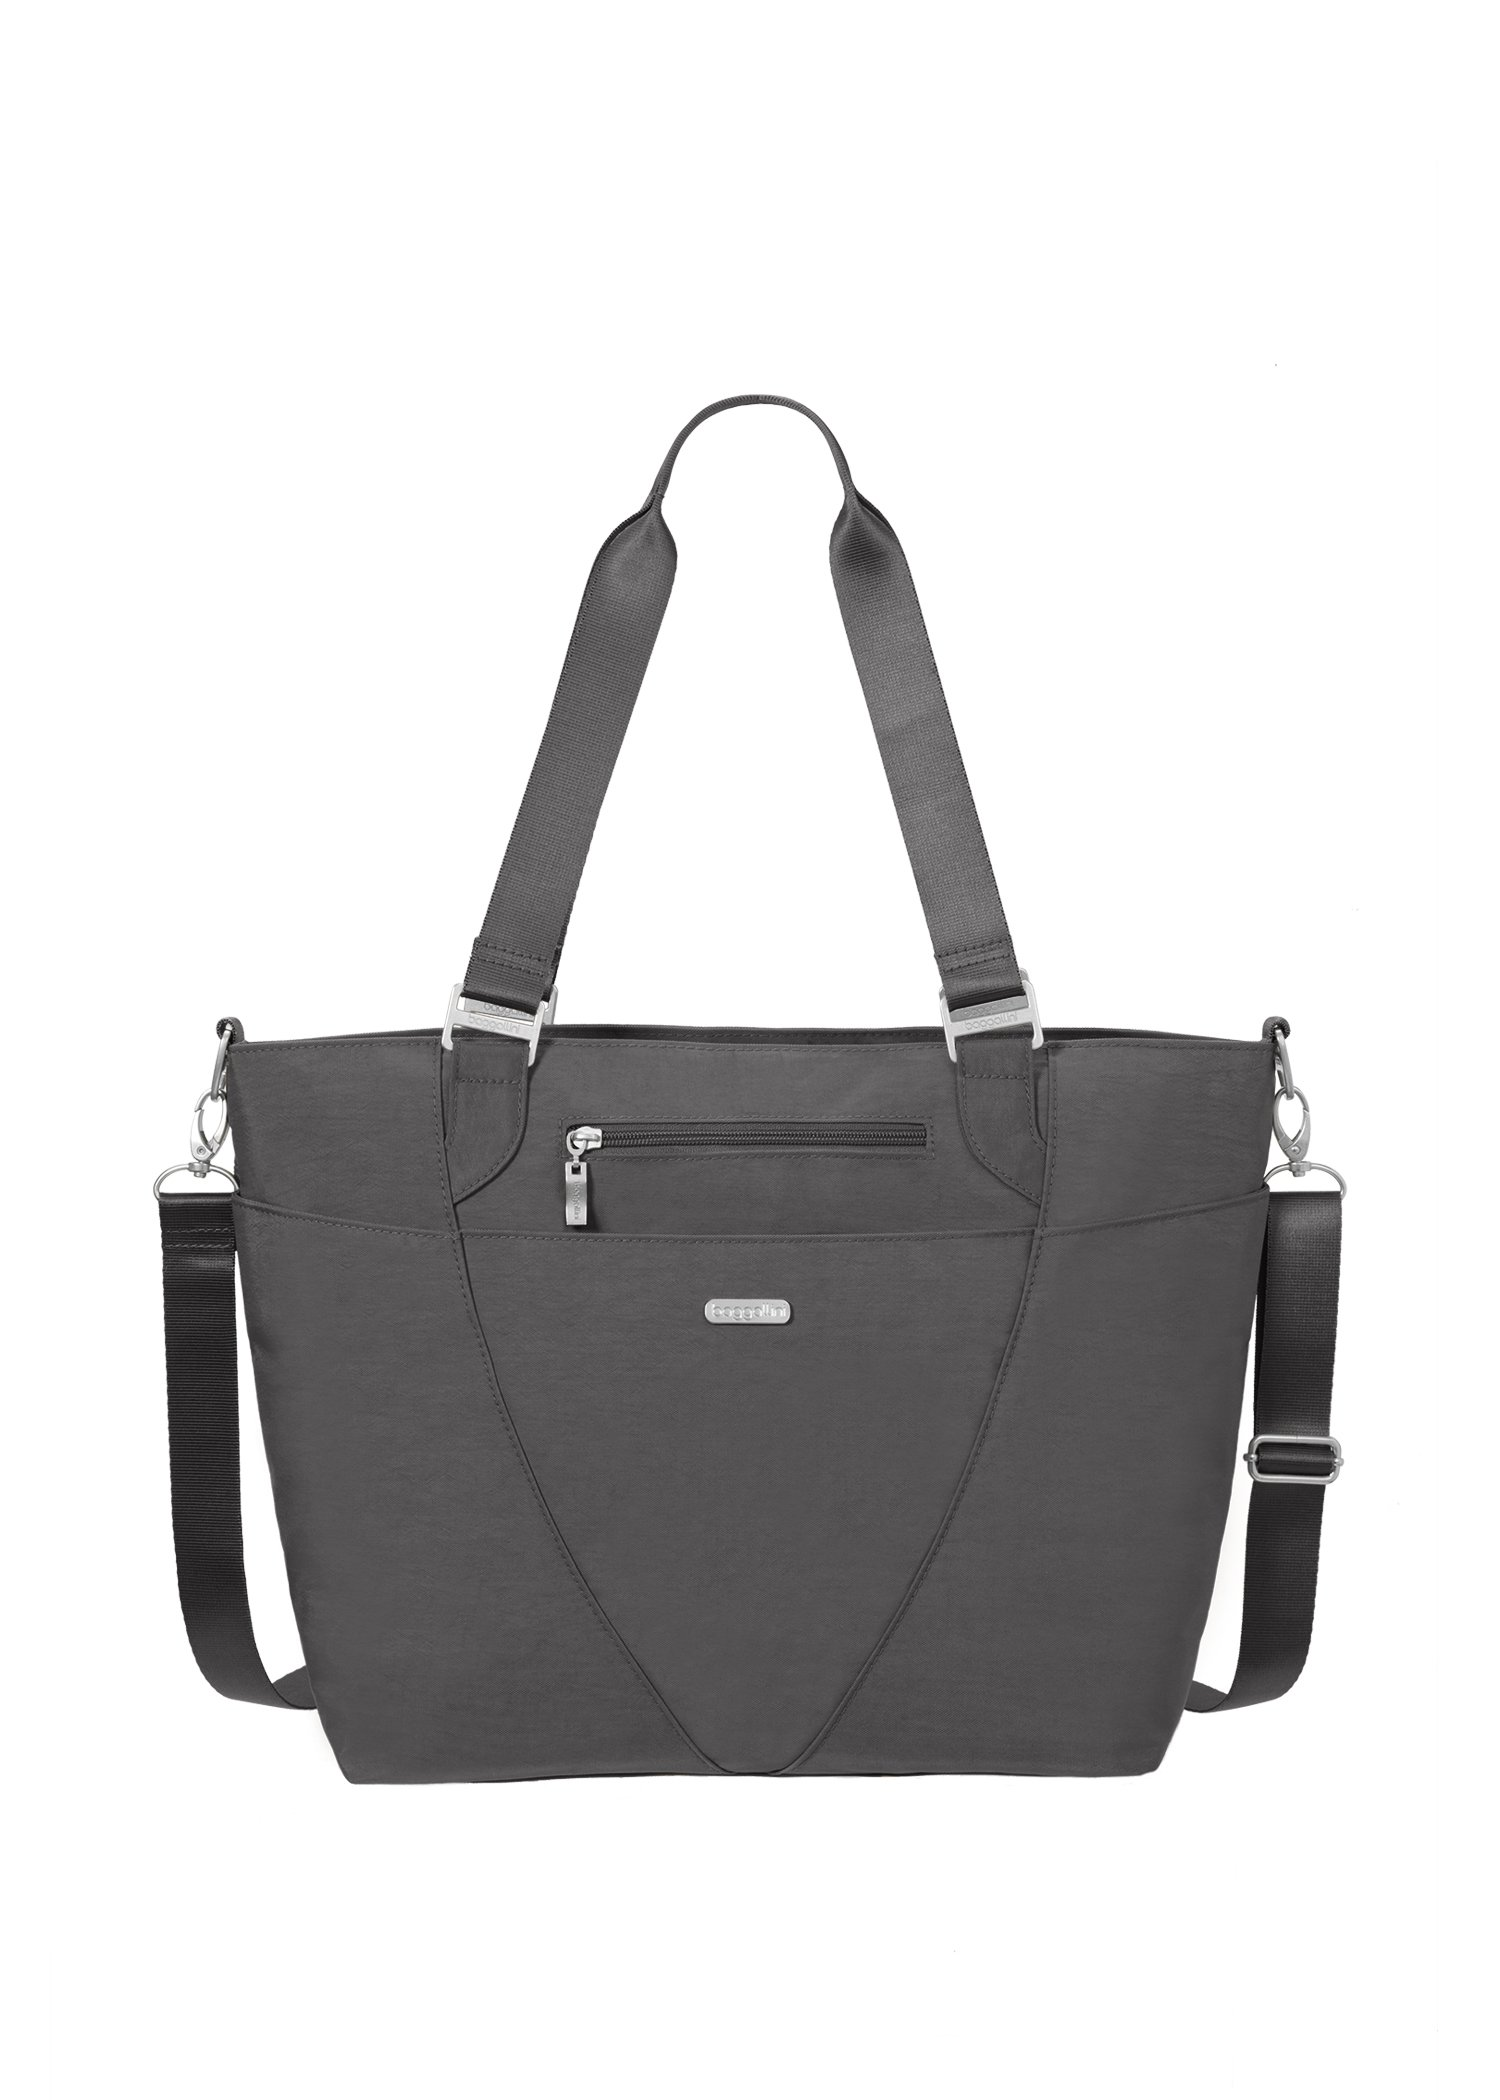 Baggallini Avenue Travel Tote, Charcoal, One Size by Baggallini (Image #1)